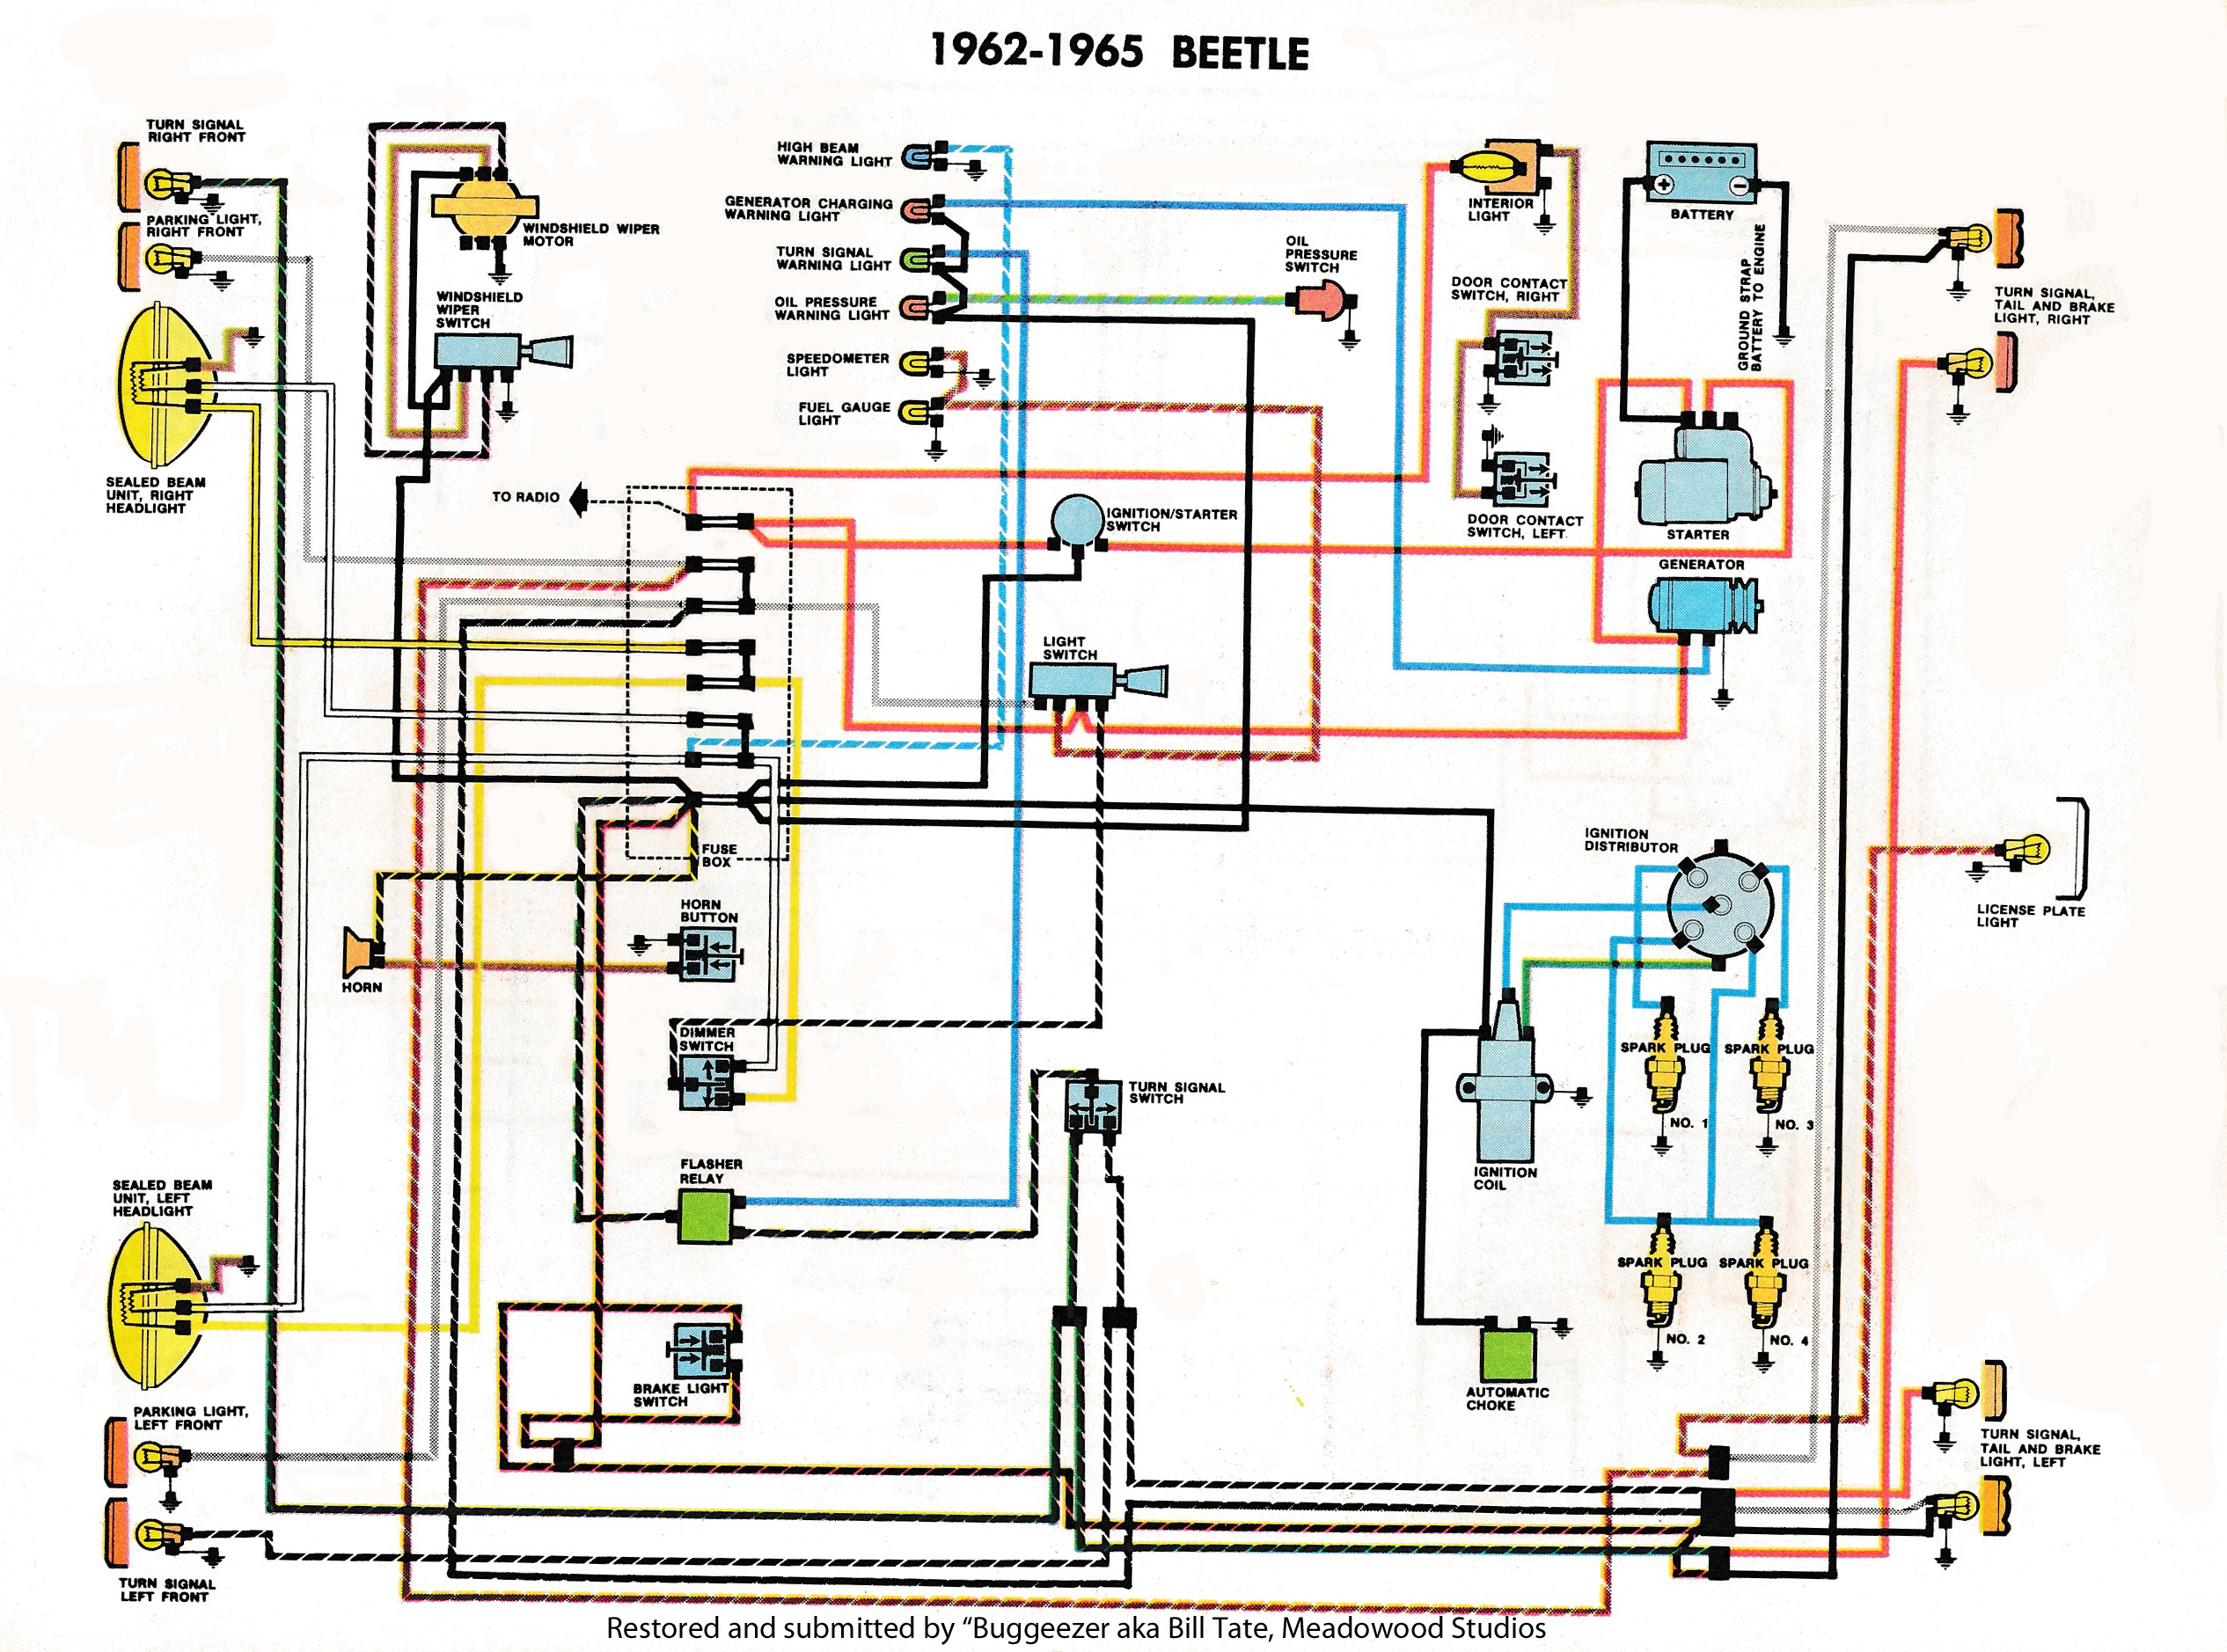 1981 Pontiac Trans Am Wiring Diagram All Kind Of Diagrams Ac 79 Data Thesamba Com Type 1 1982 1978